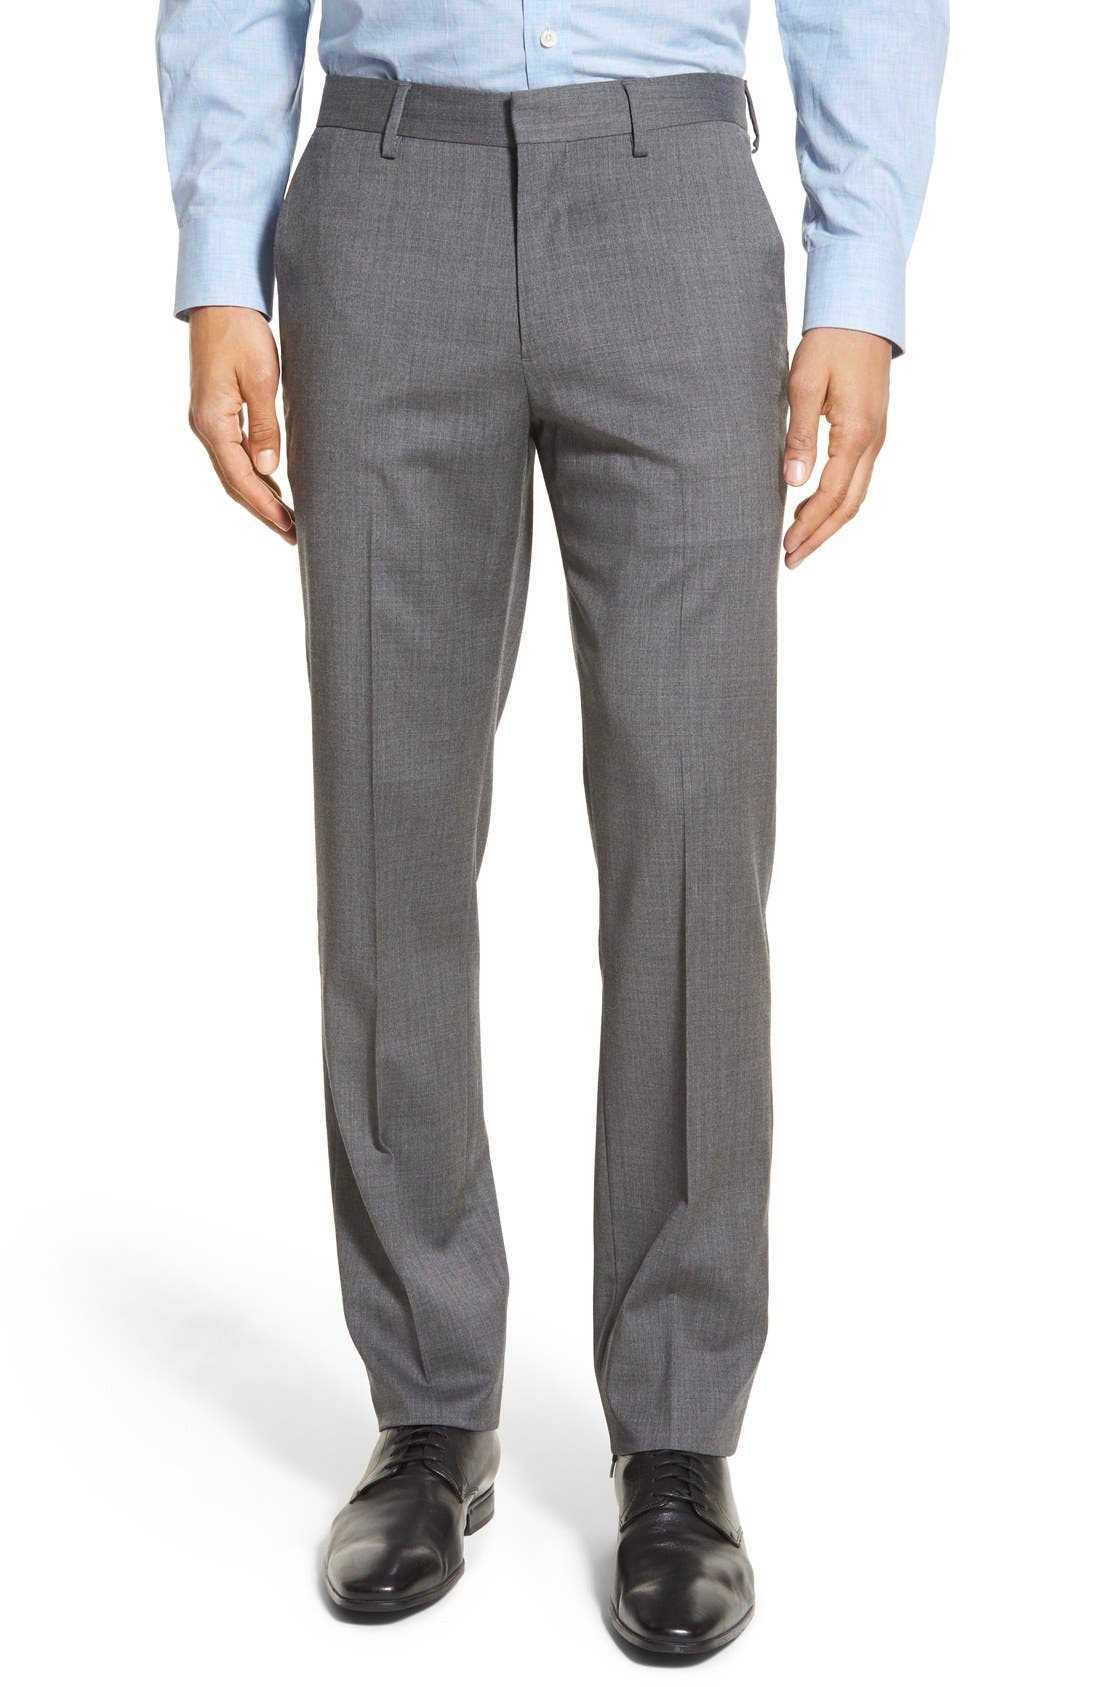 Main Image - Bonobos Jetsetter Slim Fit Flat Front Solid Stretch Wool Trousers